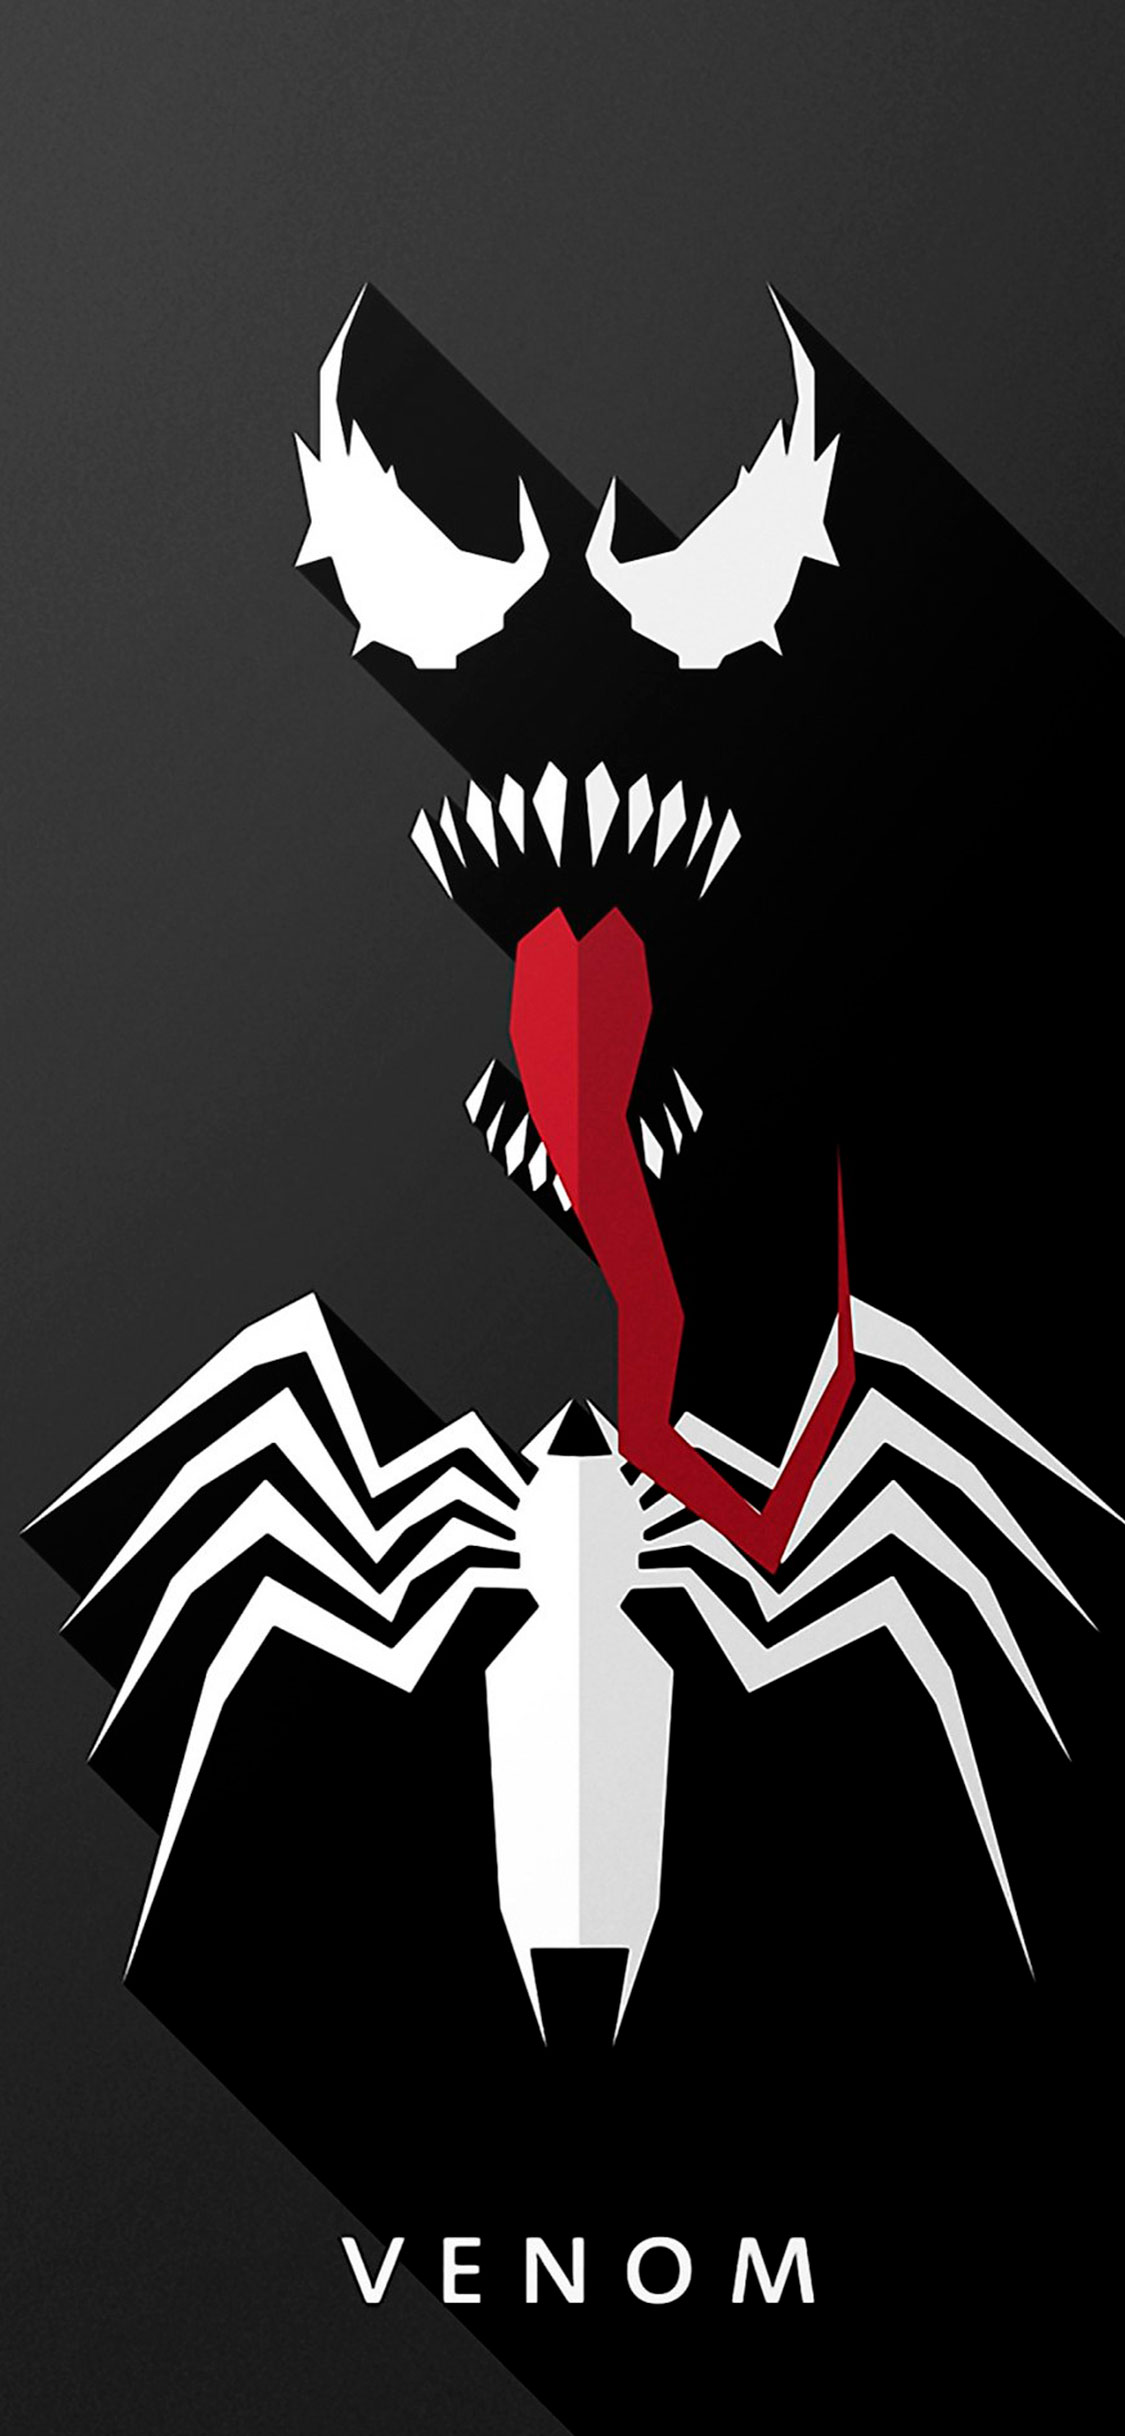 iPhone wallpaper venom3 Fonds d'écran iPhone du 14/05/2018